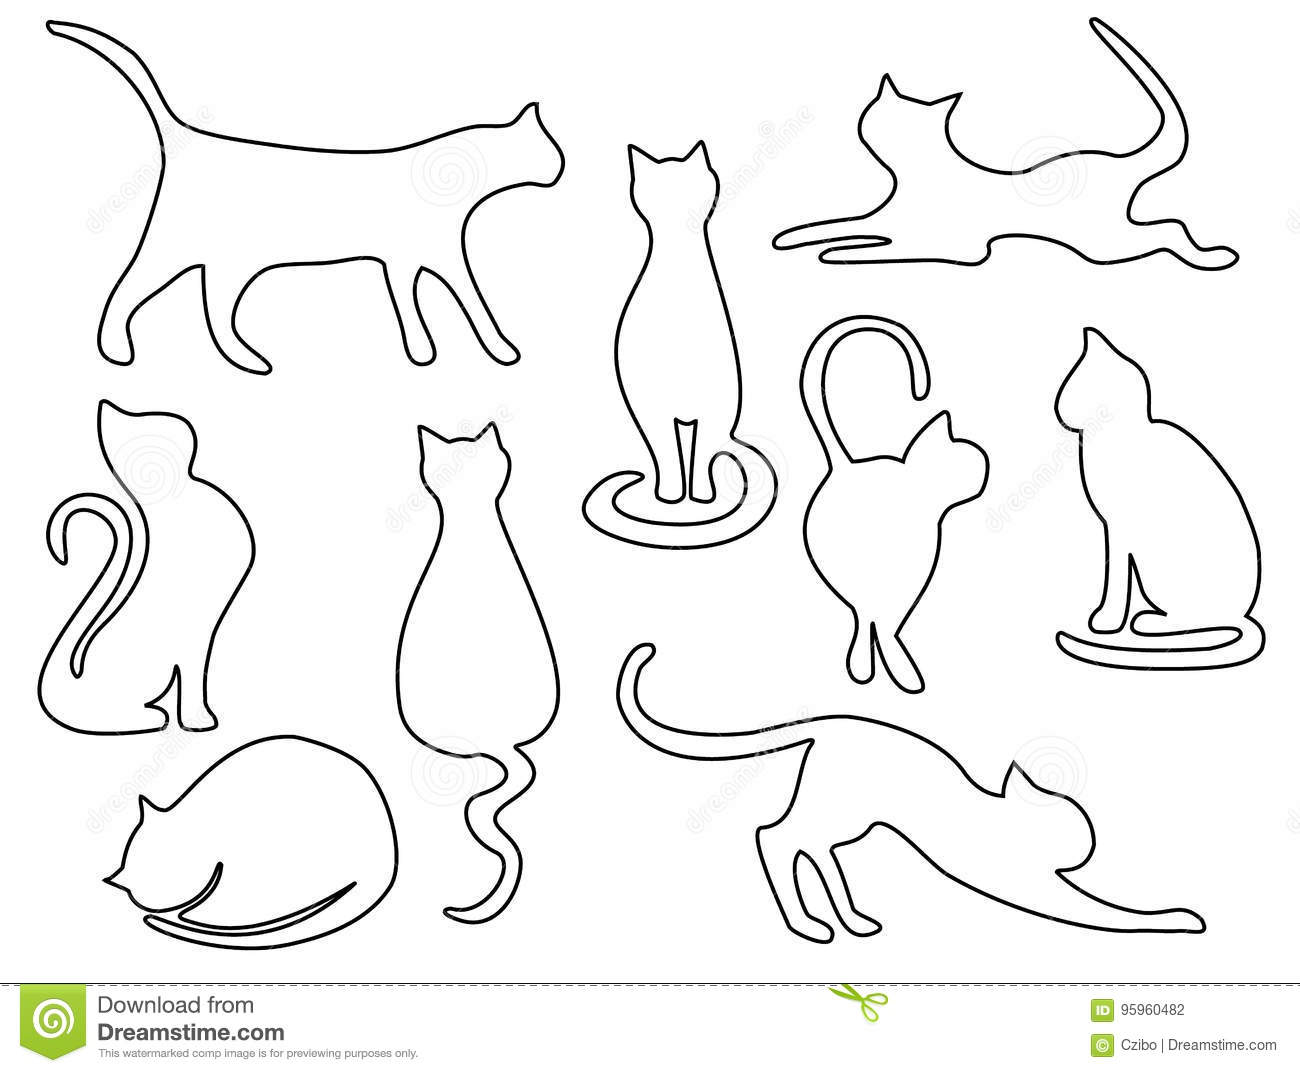 Cat Contour Line Drawing : Cat one line drawing stock vector illustration of design